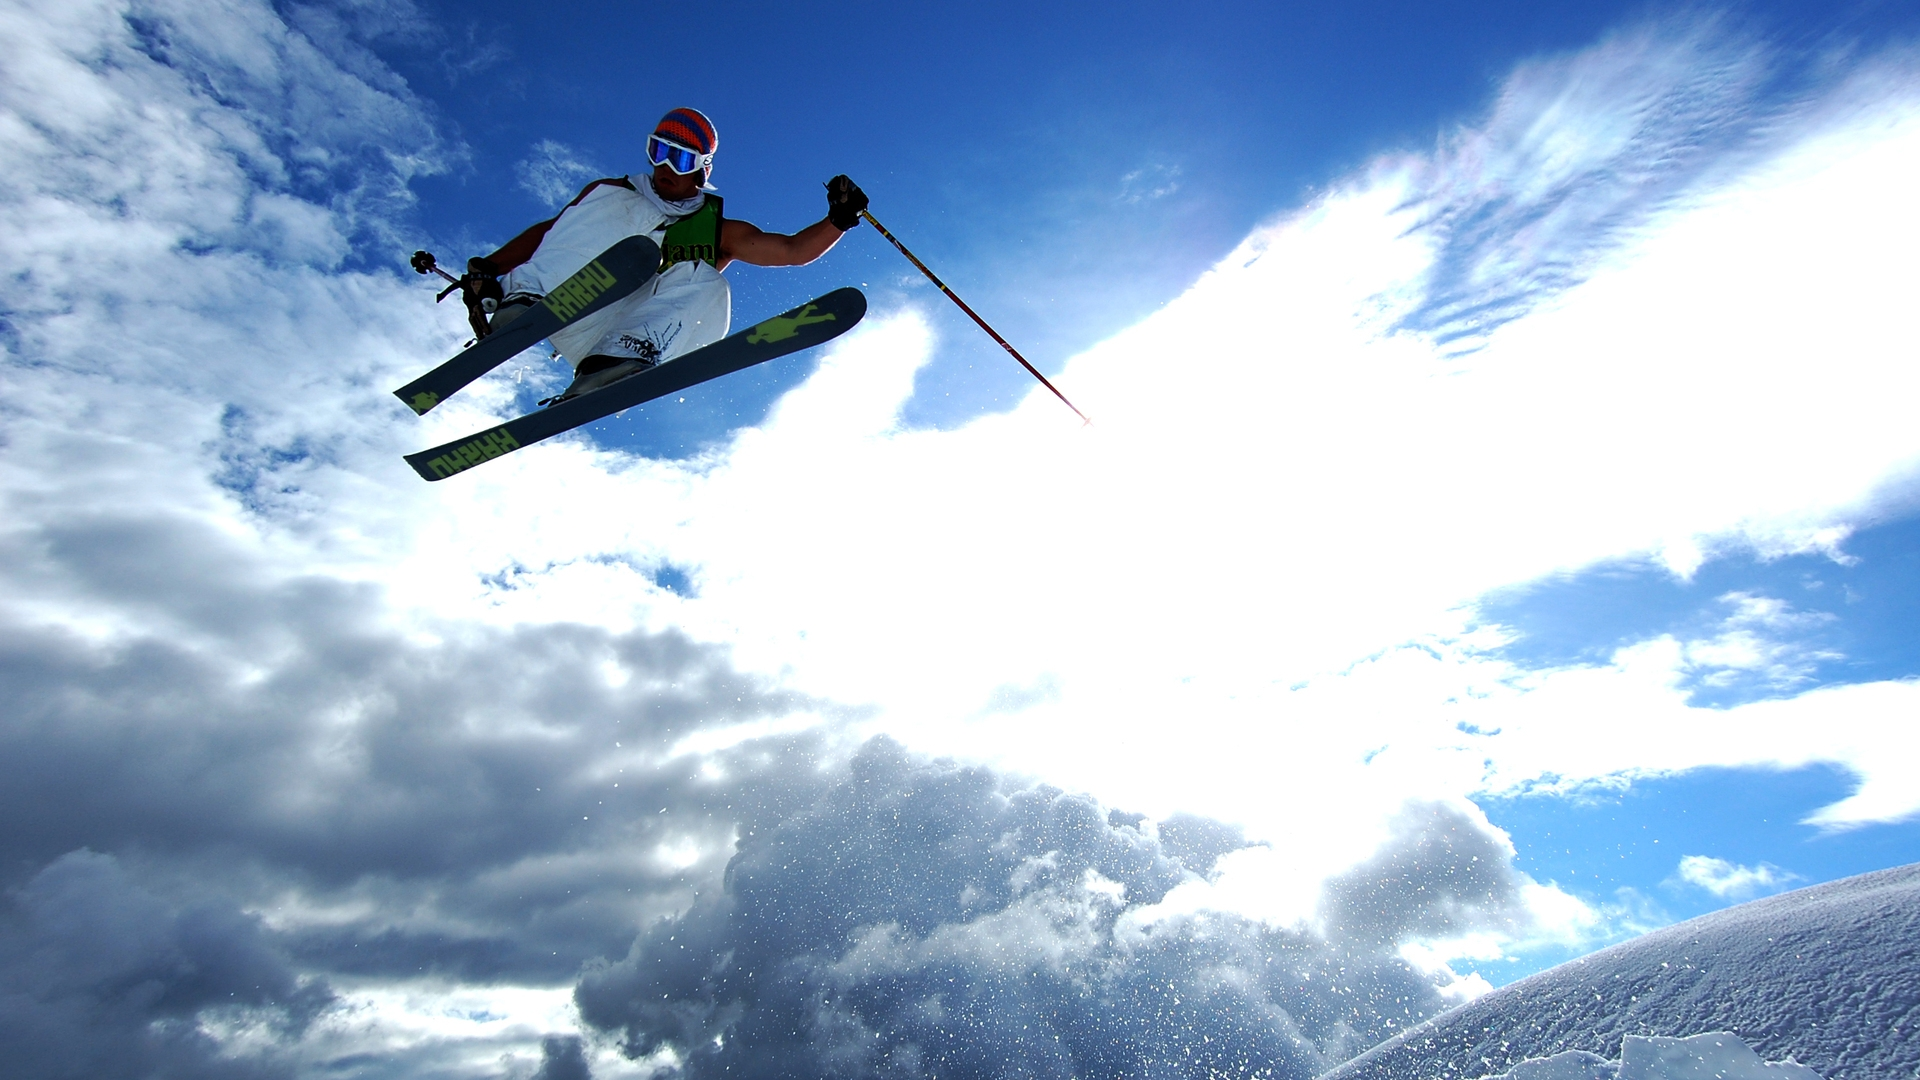 Extreme Skiing High Definition Wallpapers HD 1920x1080